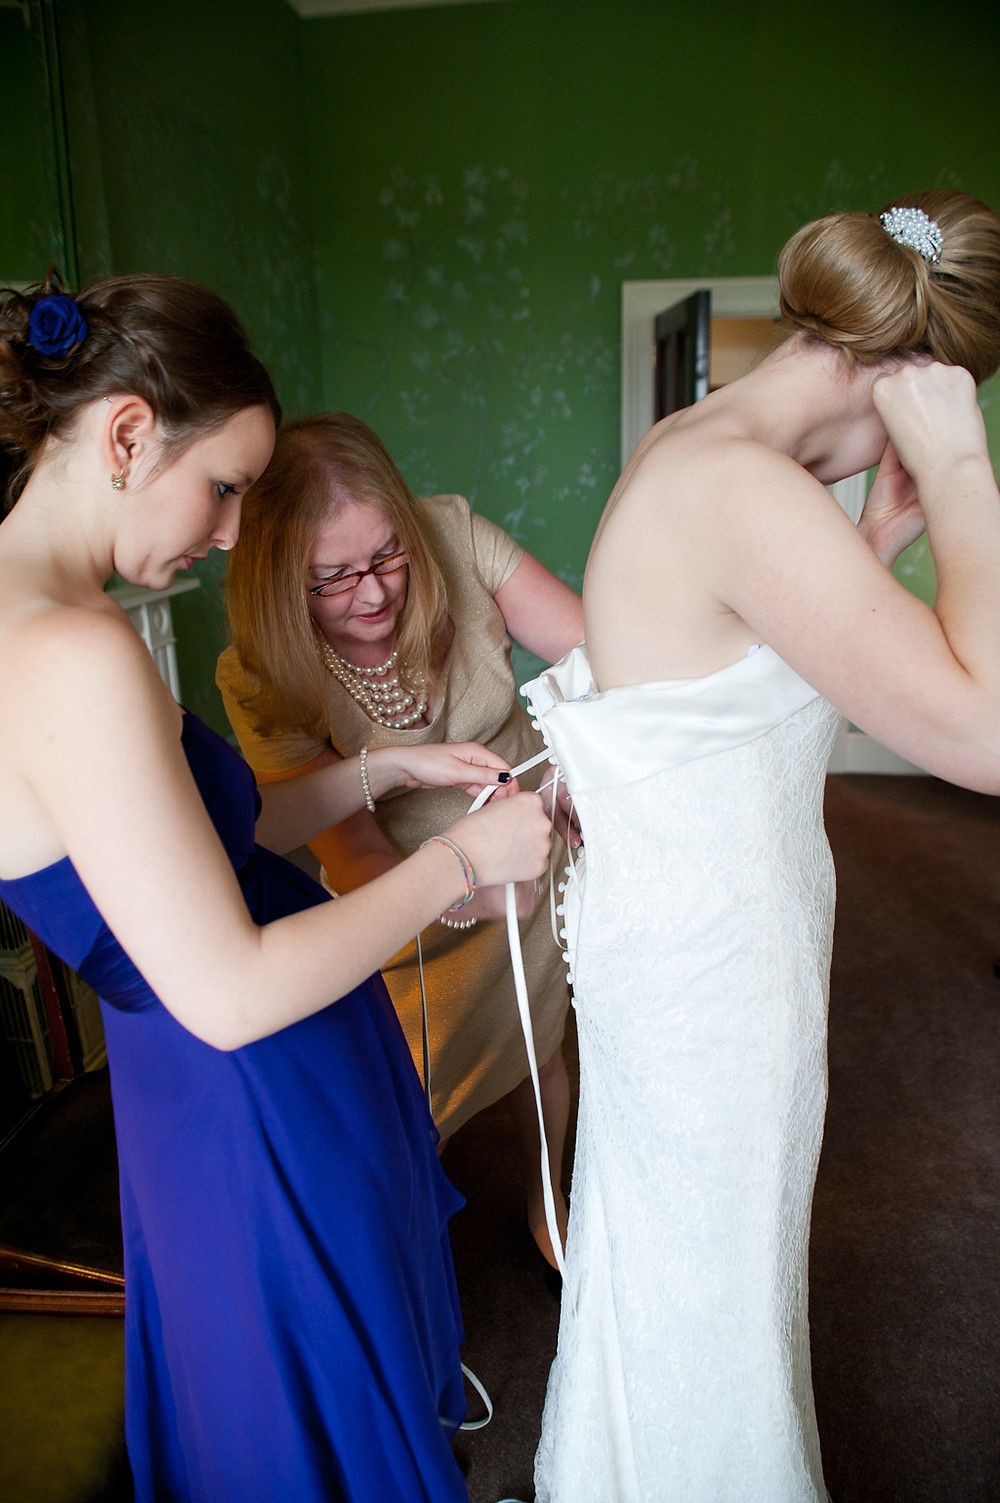 stubton hall wedding putting on wedding dress